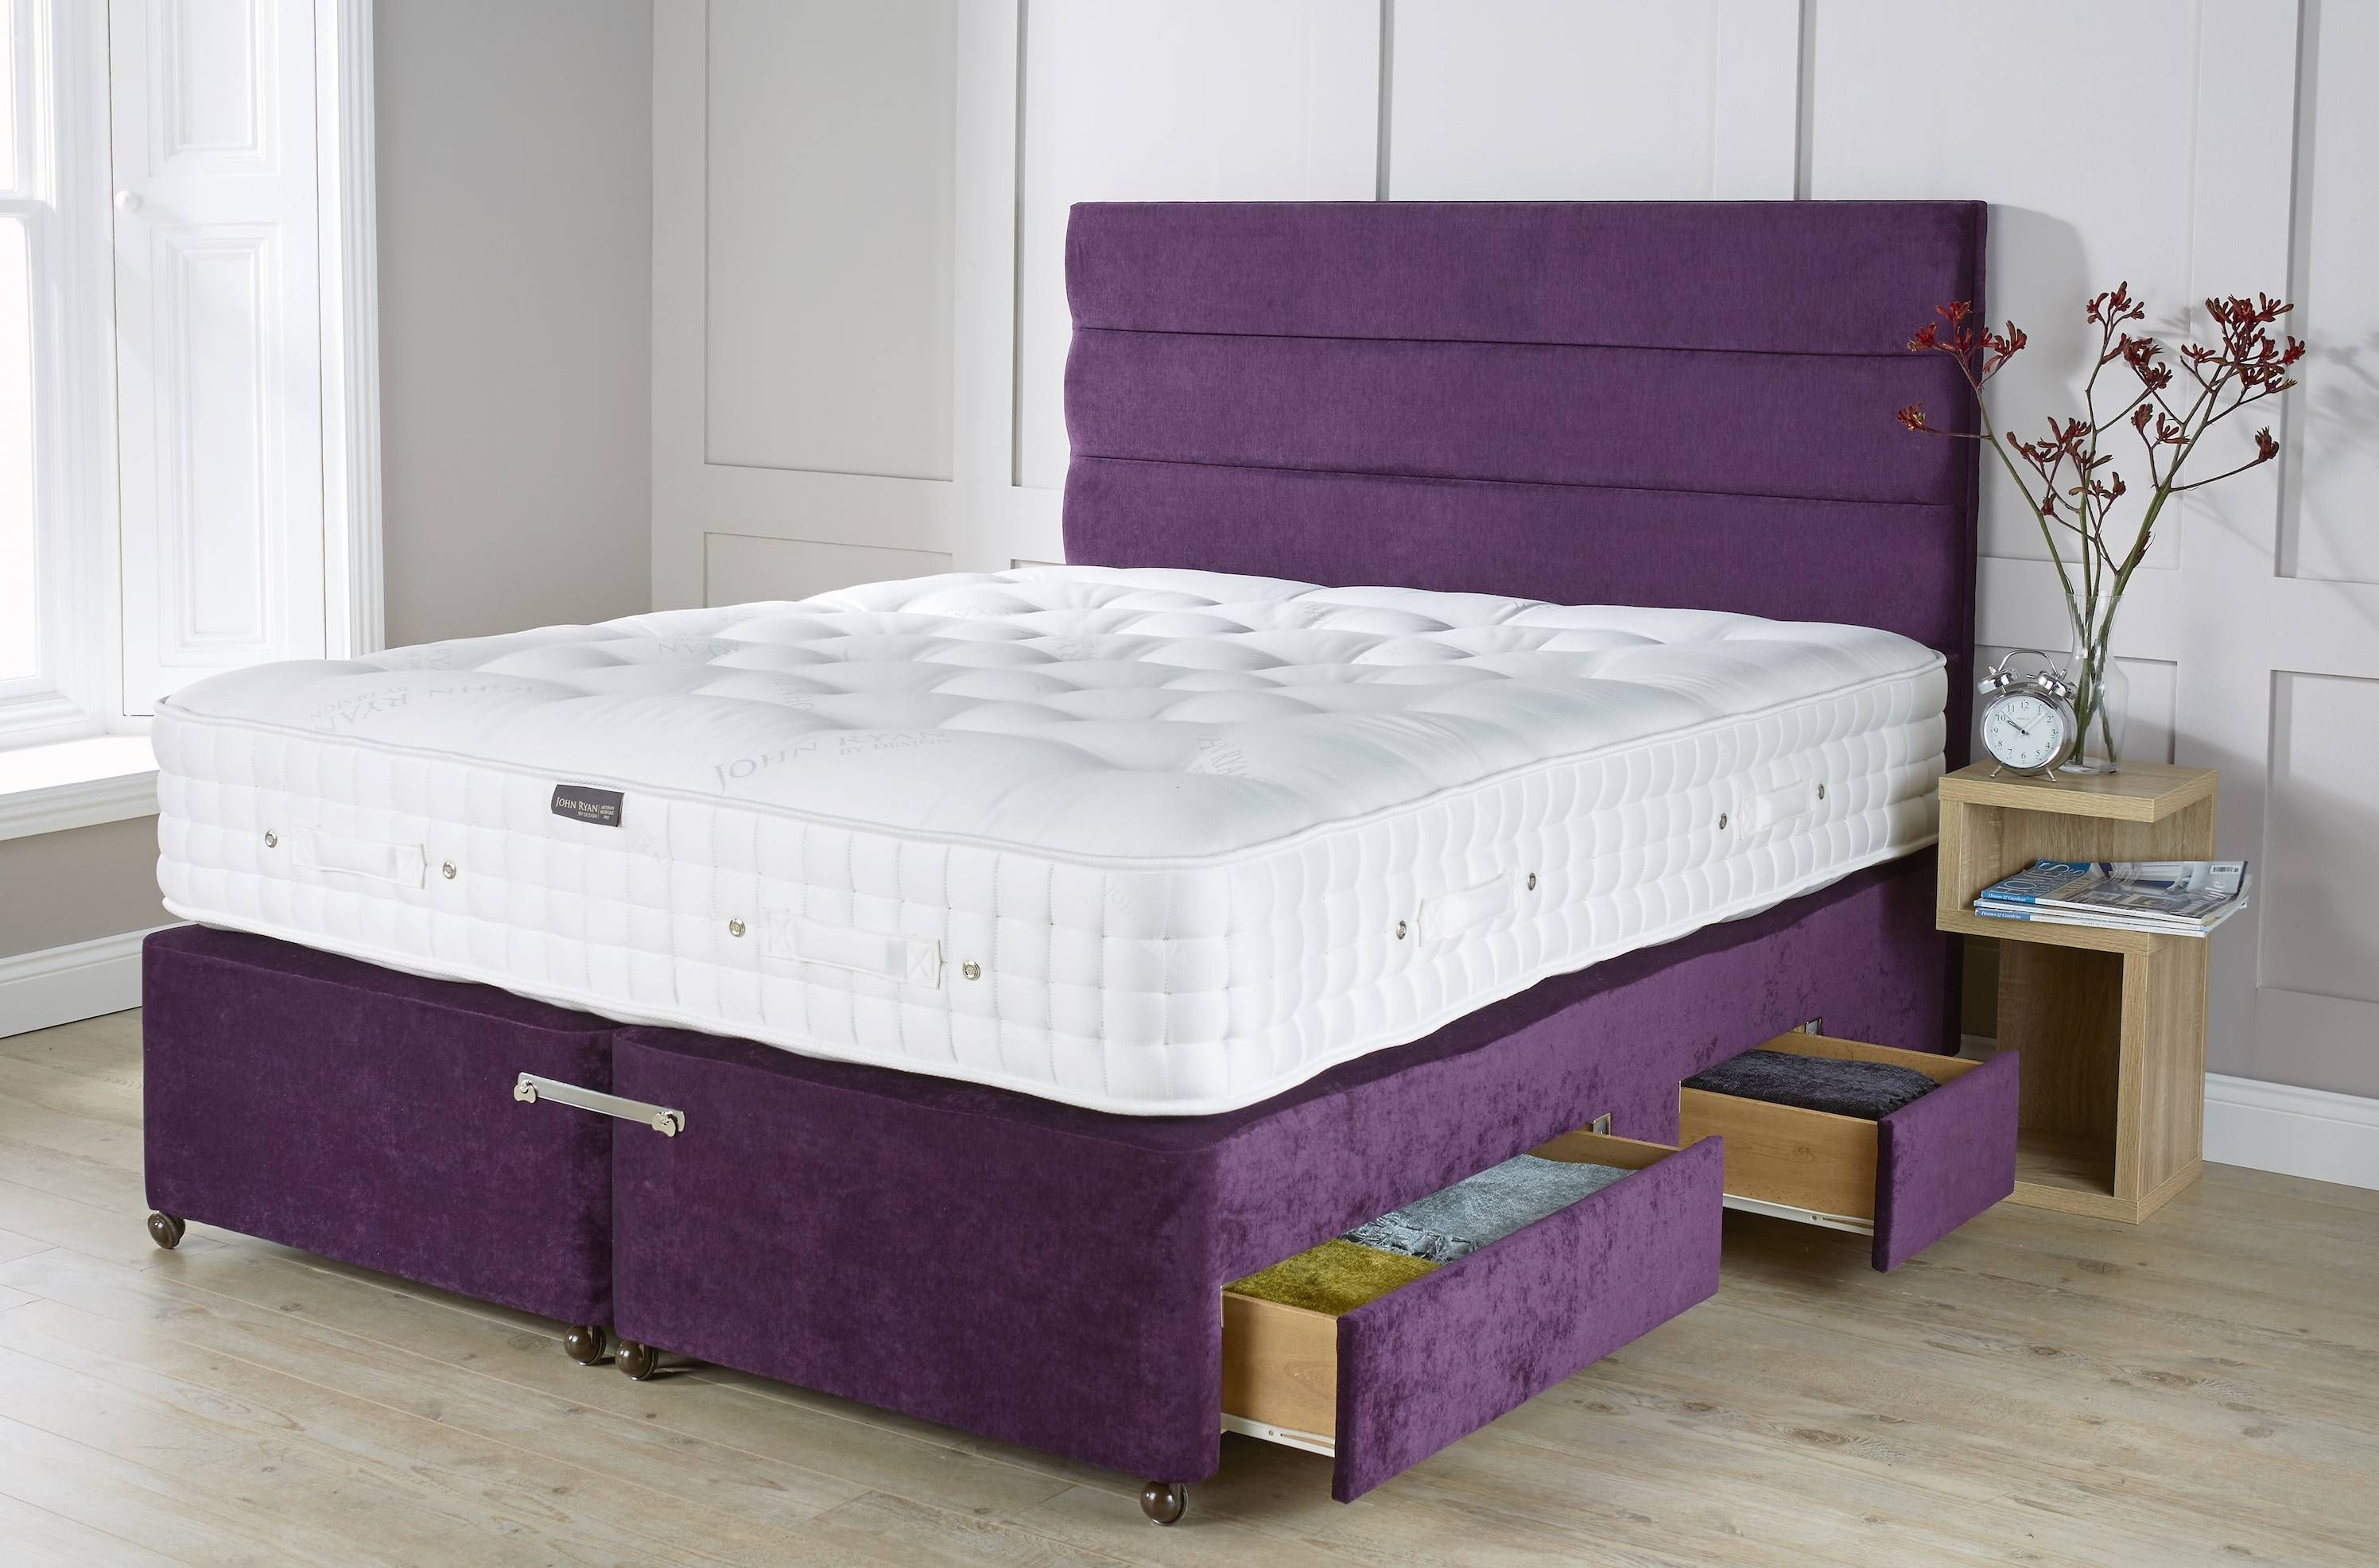 68 Best Of Photos Of Cot Size Bed Frame